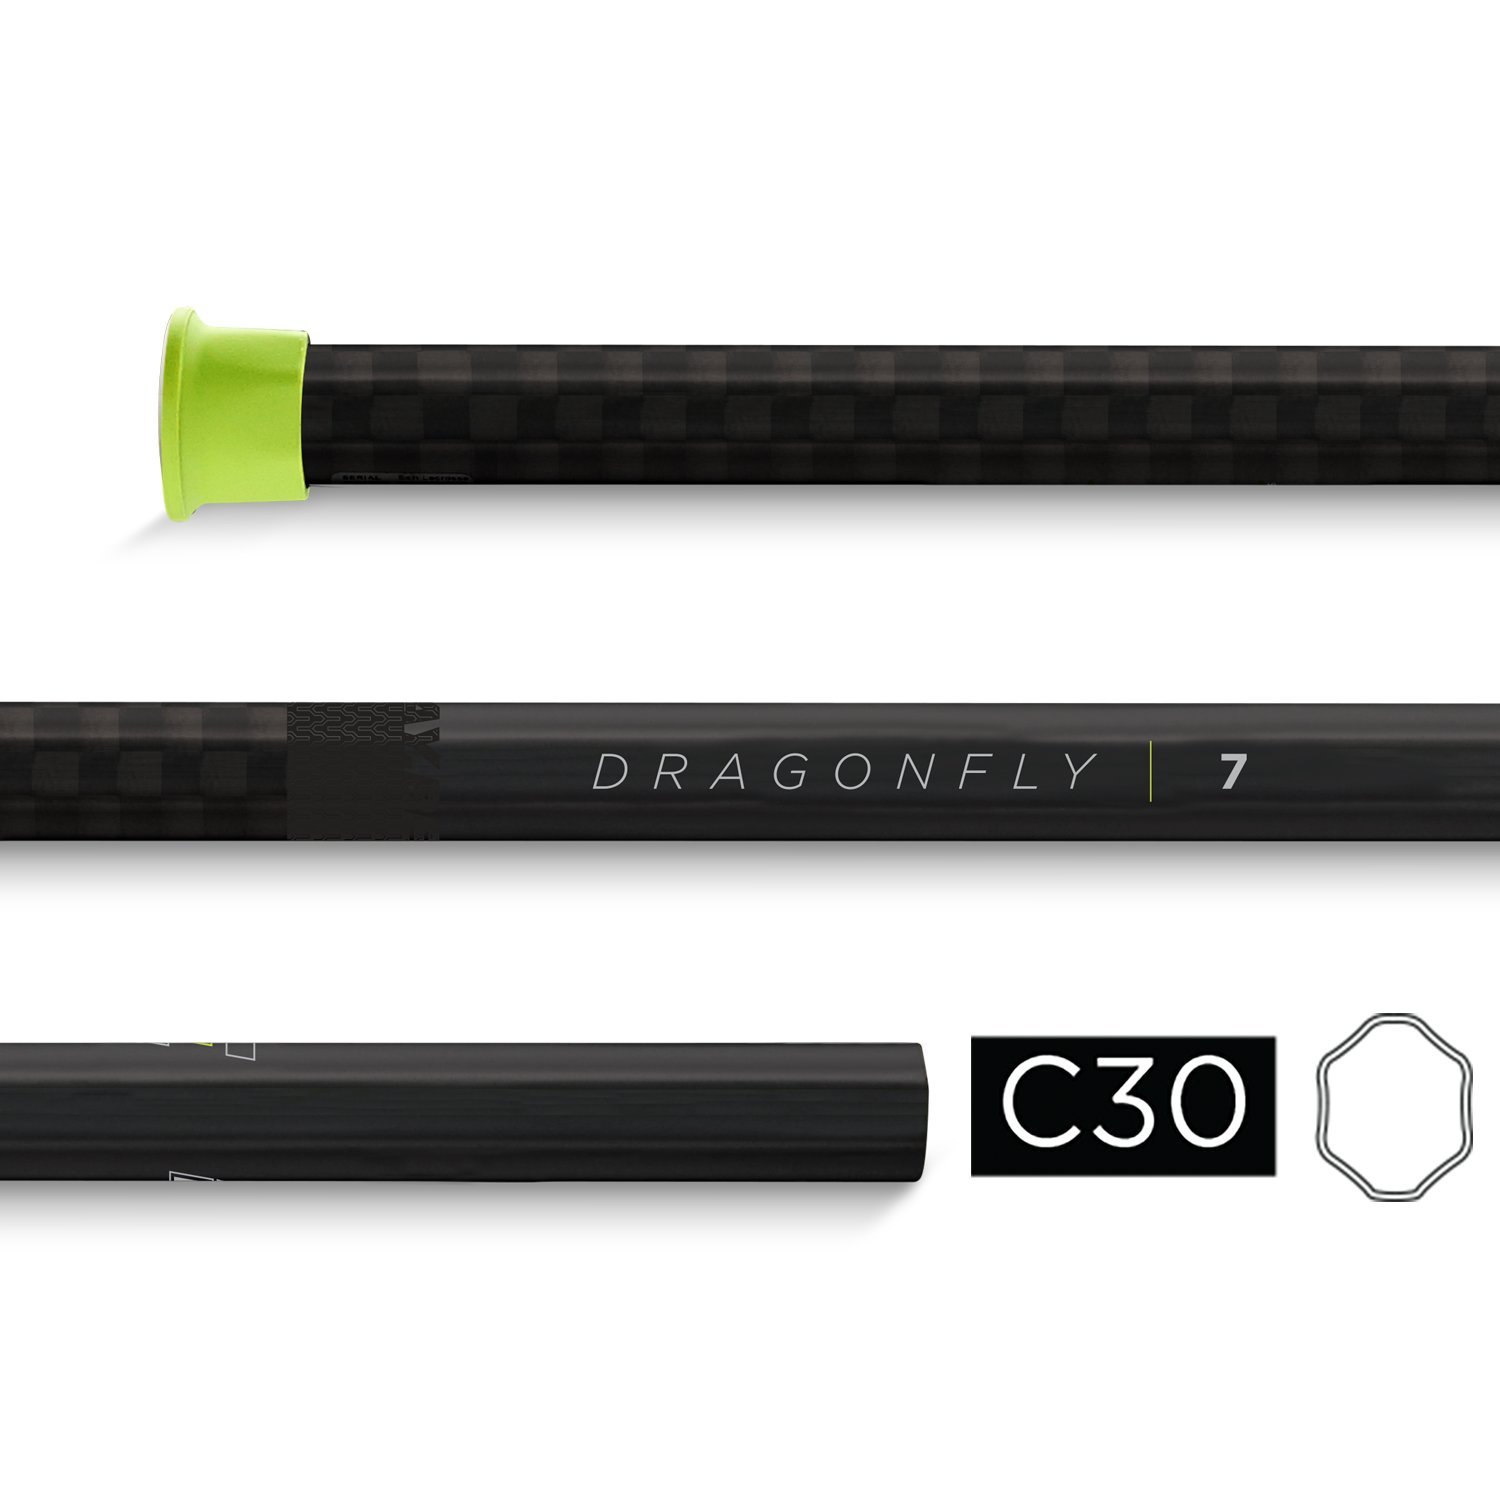 Epoch Dragonfly Gen. 7 Attack Lacrosse Shaft - C30-IQ5 by Epoch Lacrosse